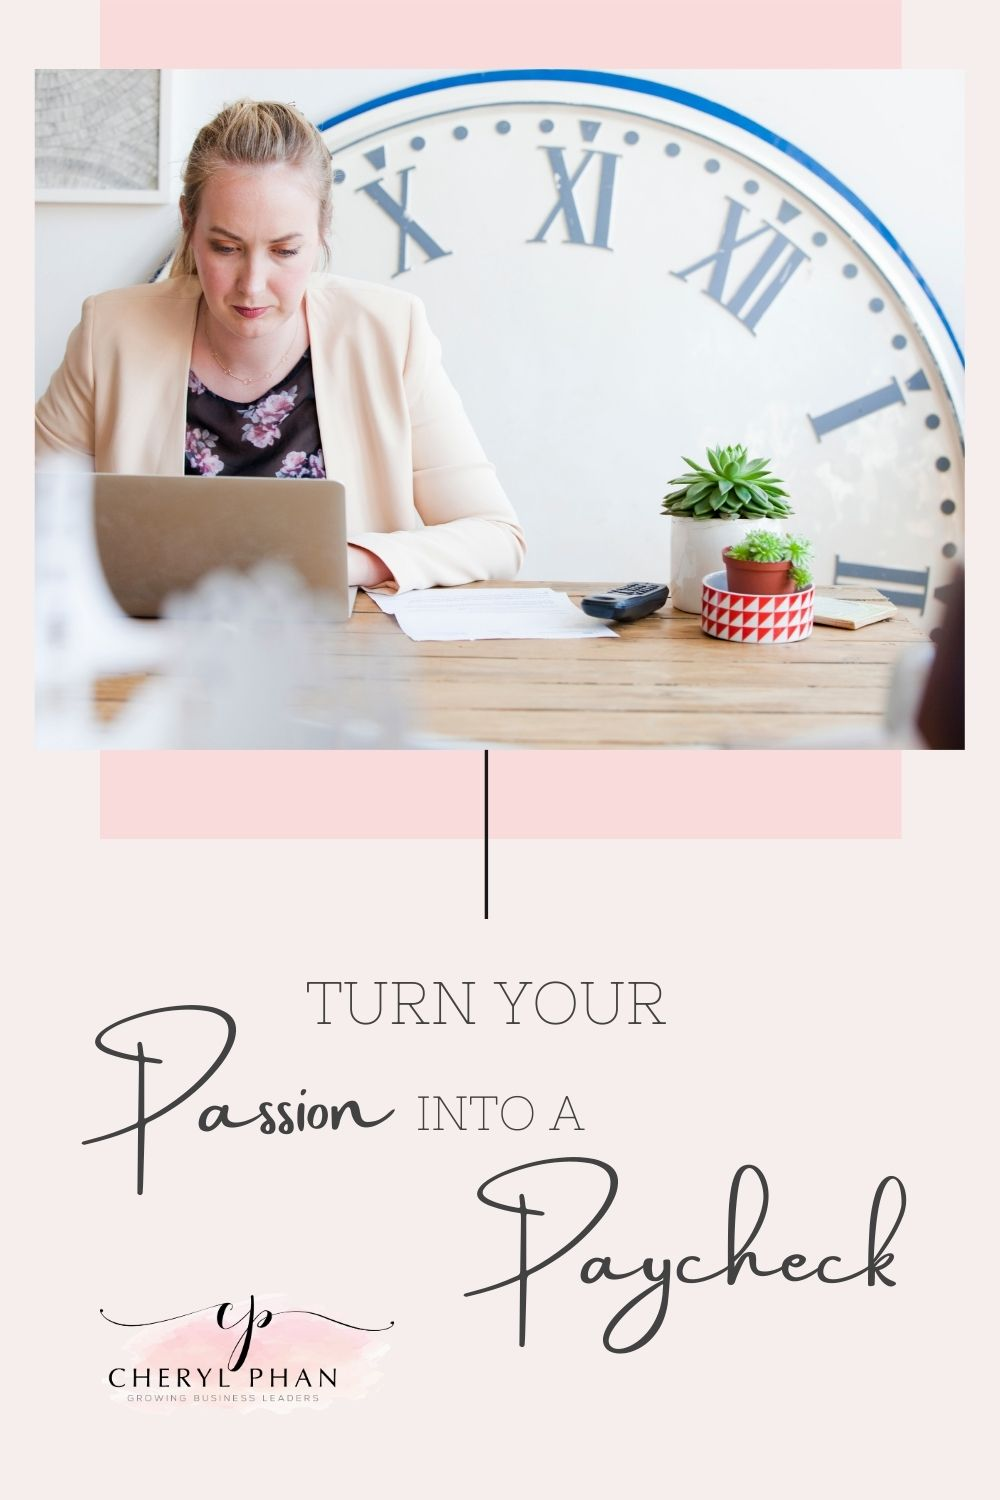 Turn Your Hobby into a Business by Cheryl Phan